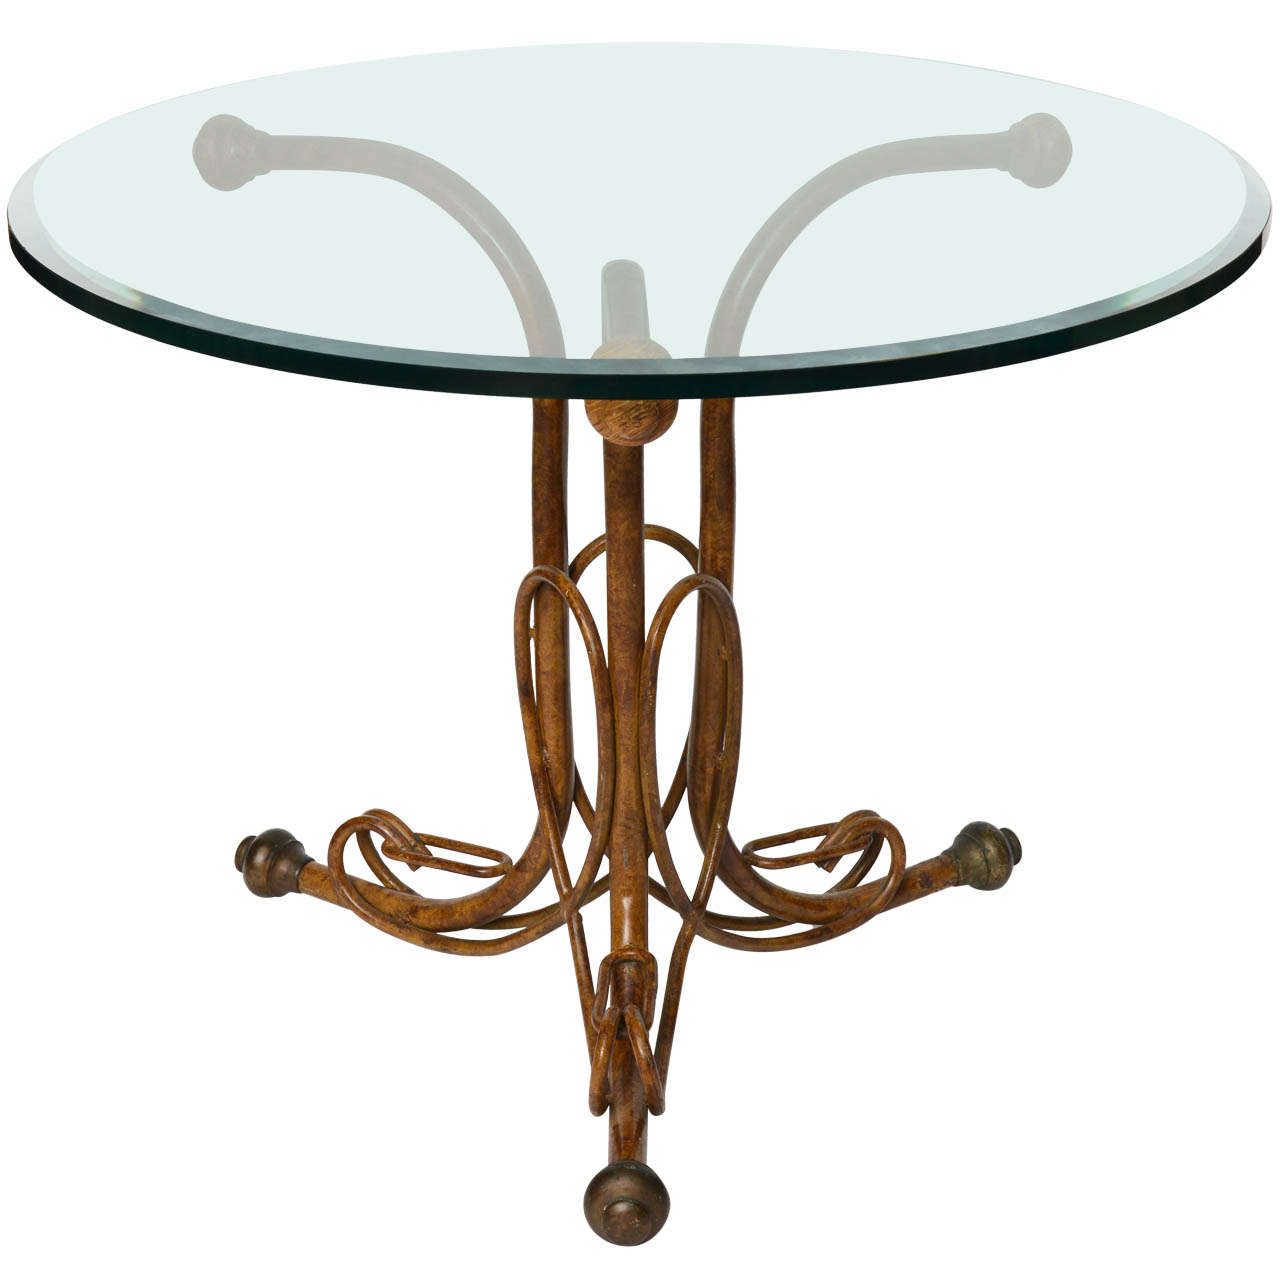 unusual faux bois painted metal glass top table marked thonet for sale at 1stdibs. Black Bedroom Furniture Sets. Home Design Ideas